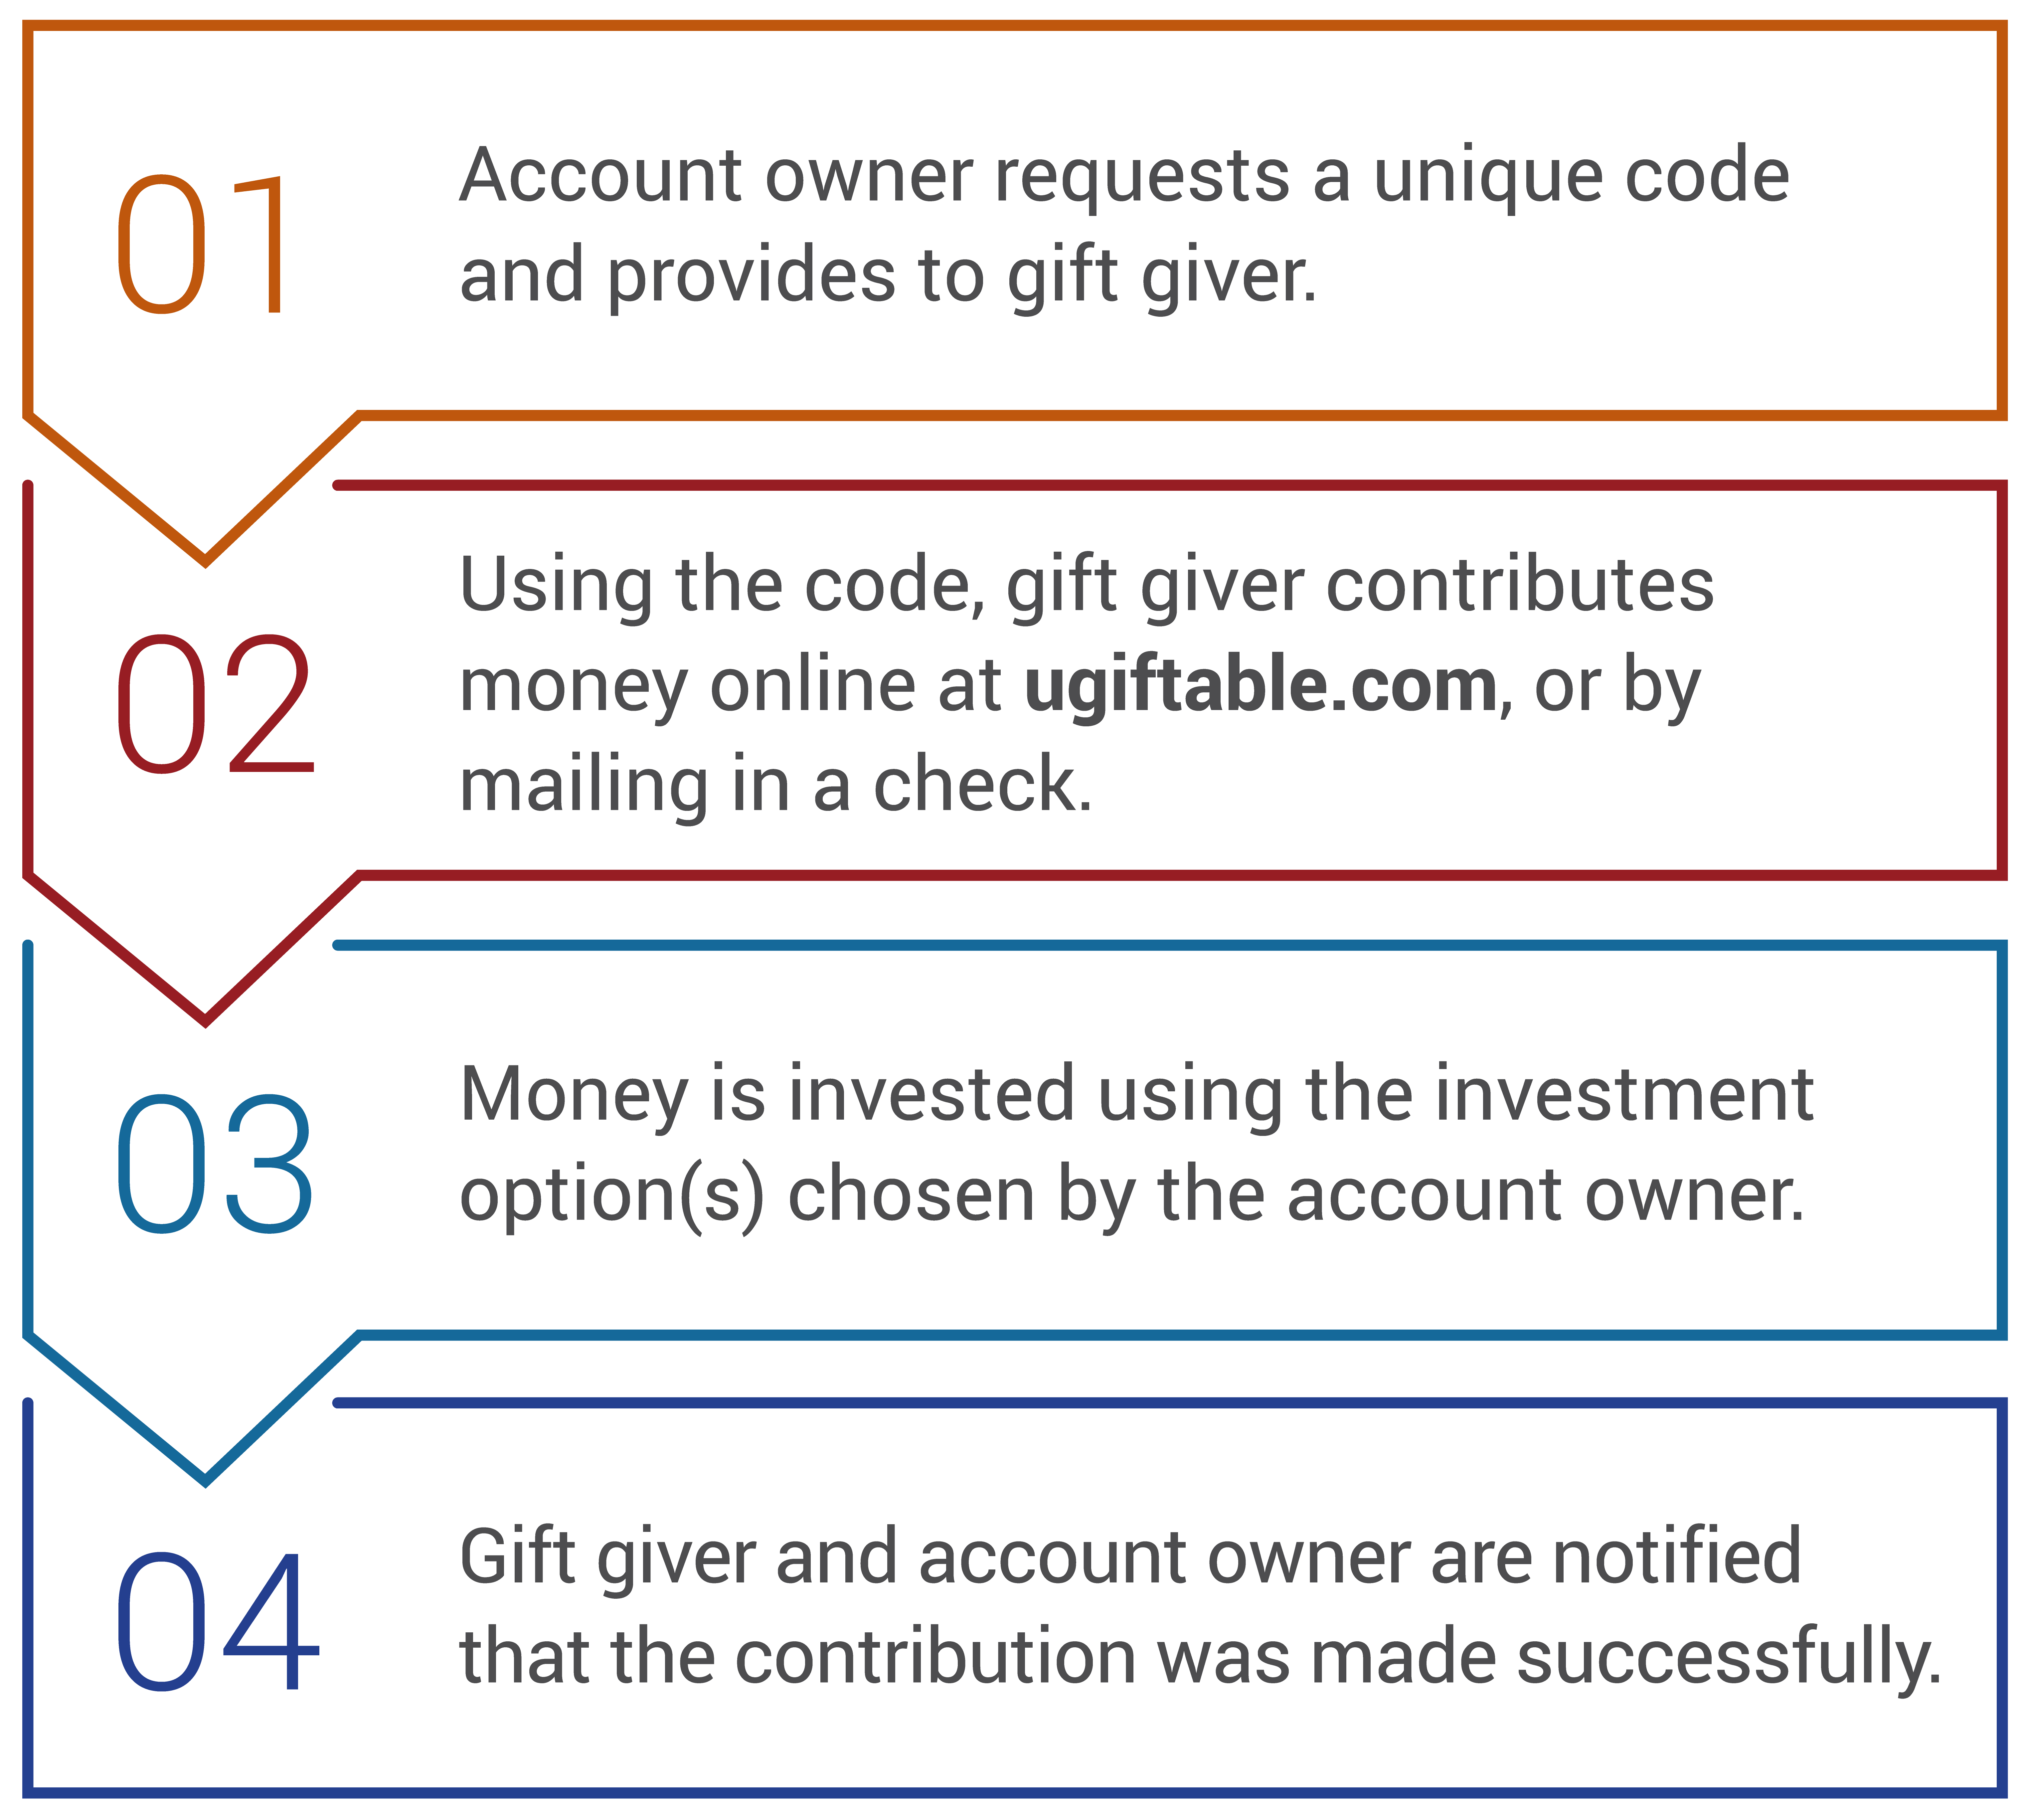 How Ugift works: Step 1: Account owner requests a unique code and provides to gift giver. Step 2: Using the code, gift giver contributes money online at ugiftable.com, or by mailing in a check. Step 3: Money is invested using the investment option(s) chosen by the account owner. Step 4: Gift giver and account owner are notified that the contribution was made successfully.